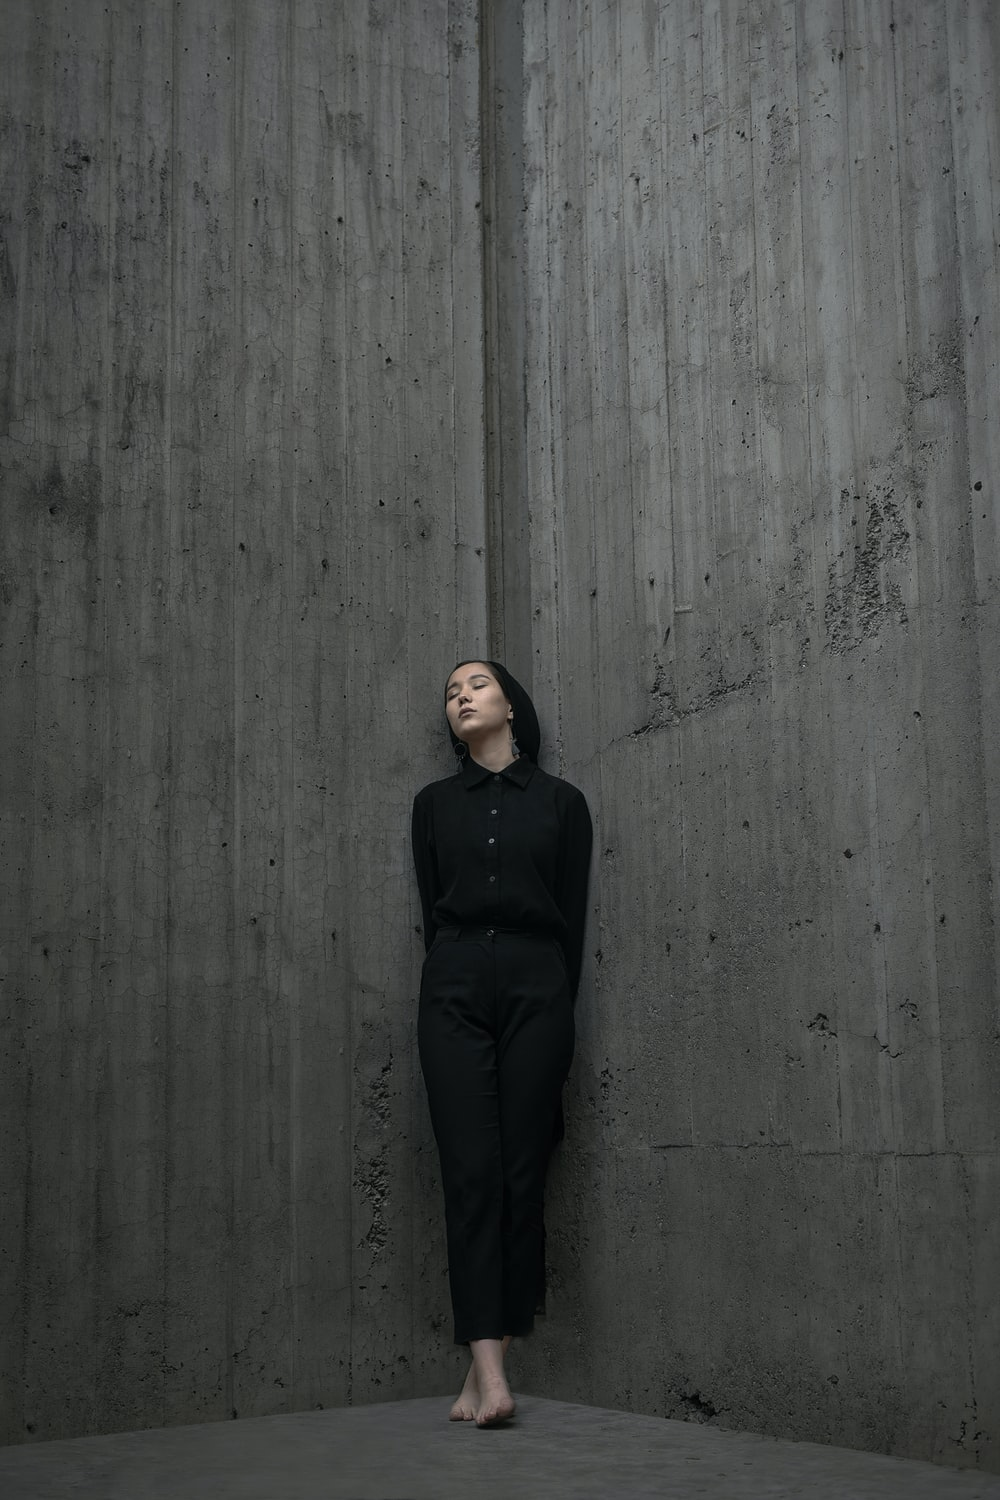 woman standing and leaning on concrete wall corner